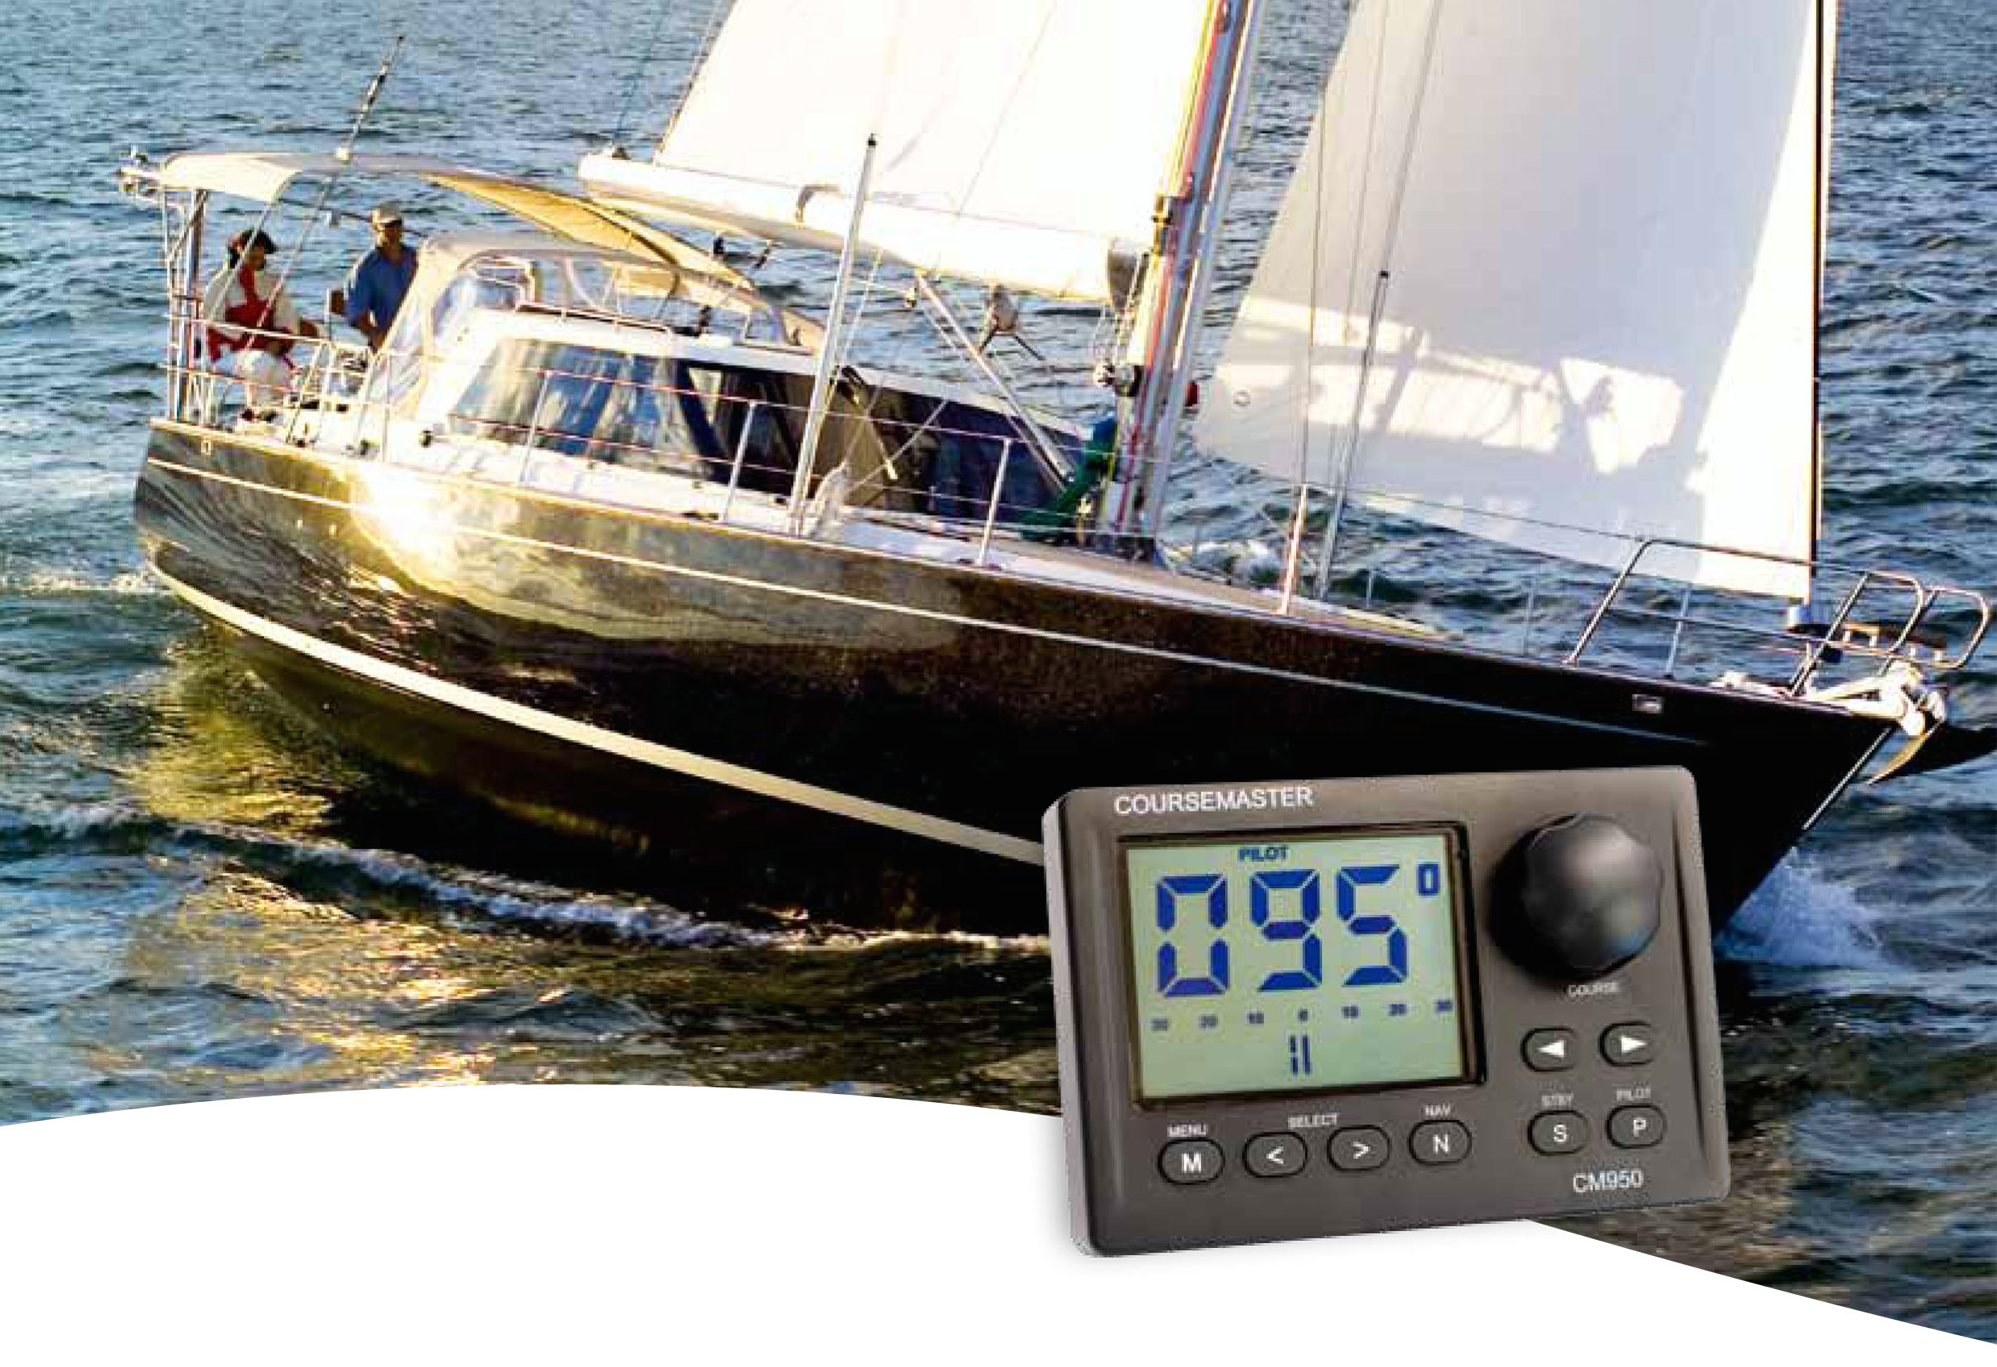 CM950 with yacht